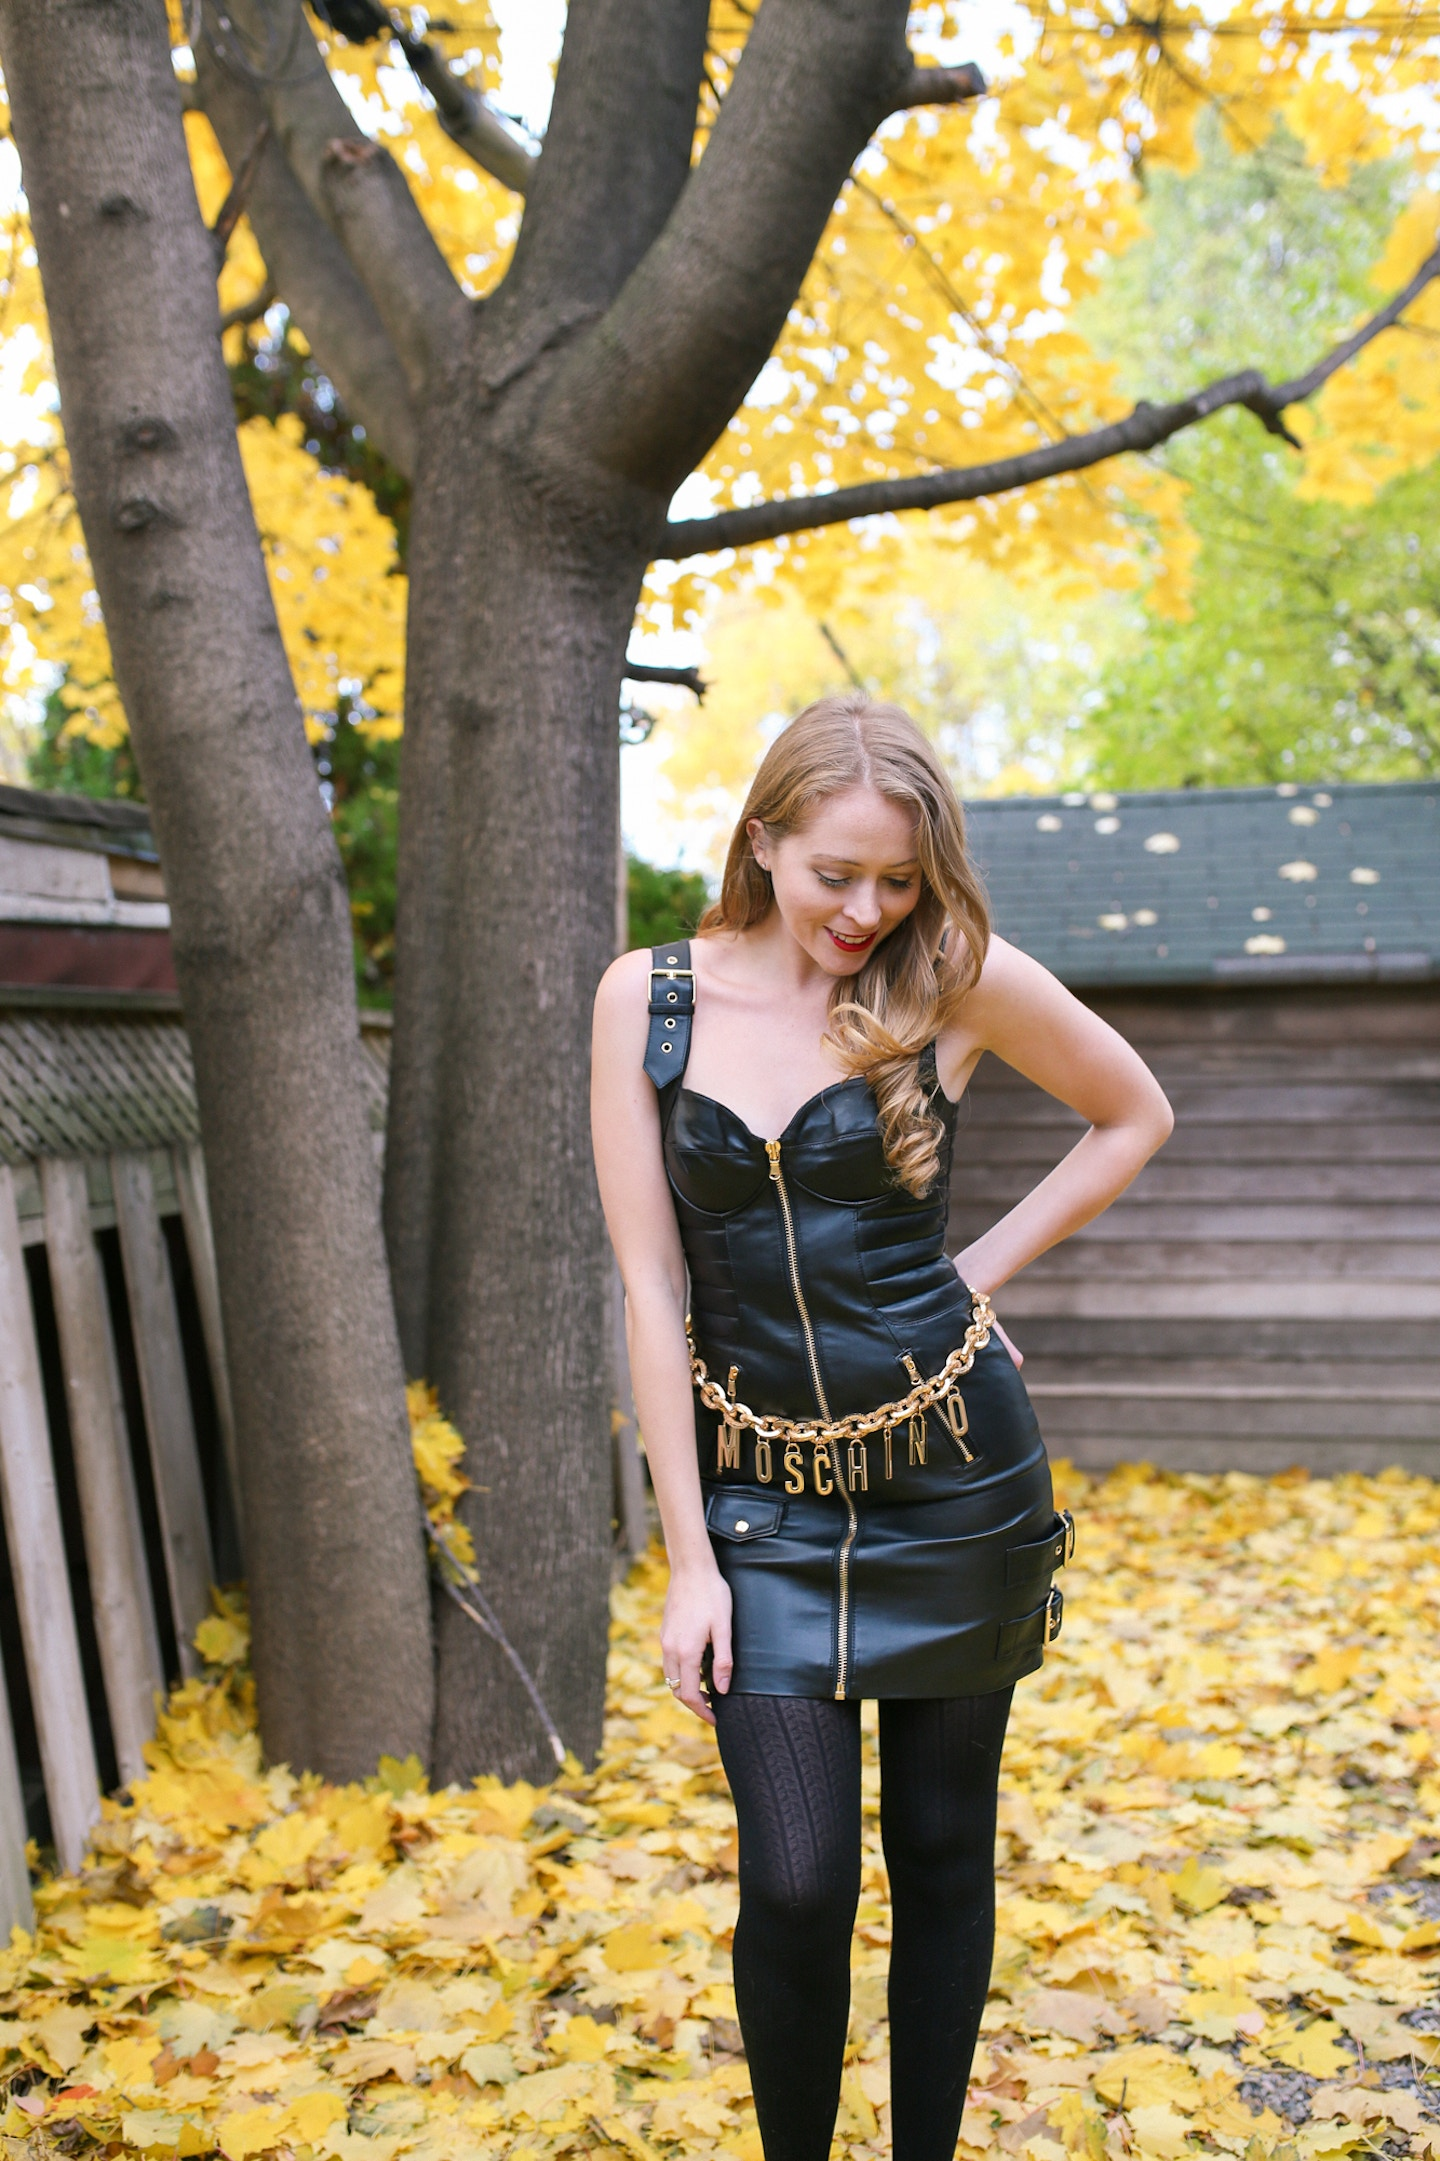 How to wear the Moschino for H&M collection: I share my H&Moschino shopping haul and how to style the leather dress and gold belt.